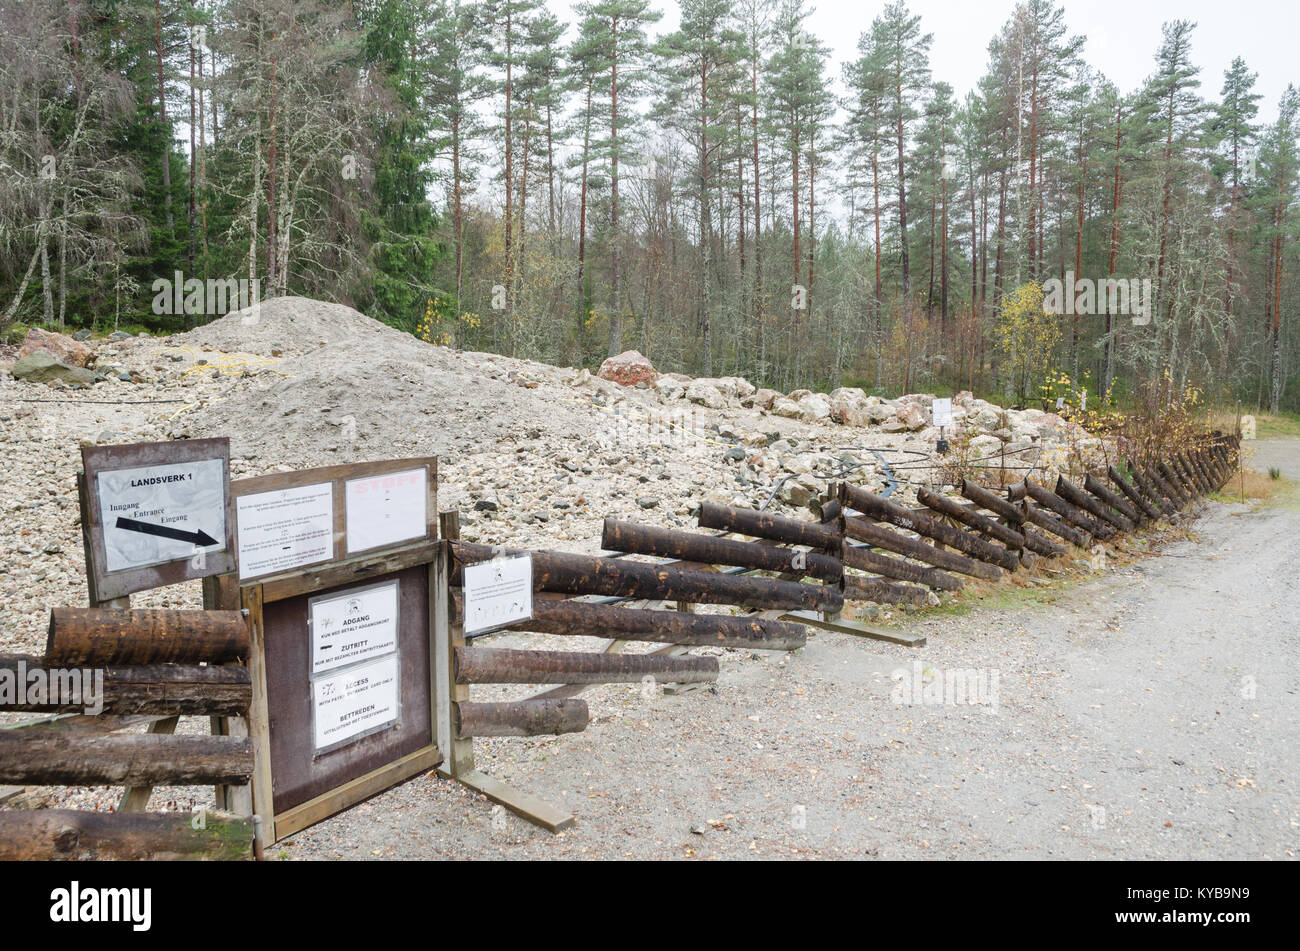 Mine dump of Landsverk 1 in Evje Mineralsti. Between the stones you can find some rare minerals and gemstones. - Stock Image